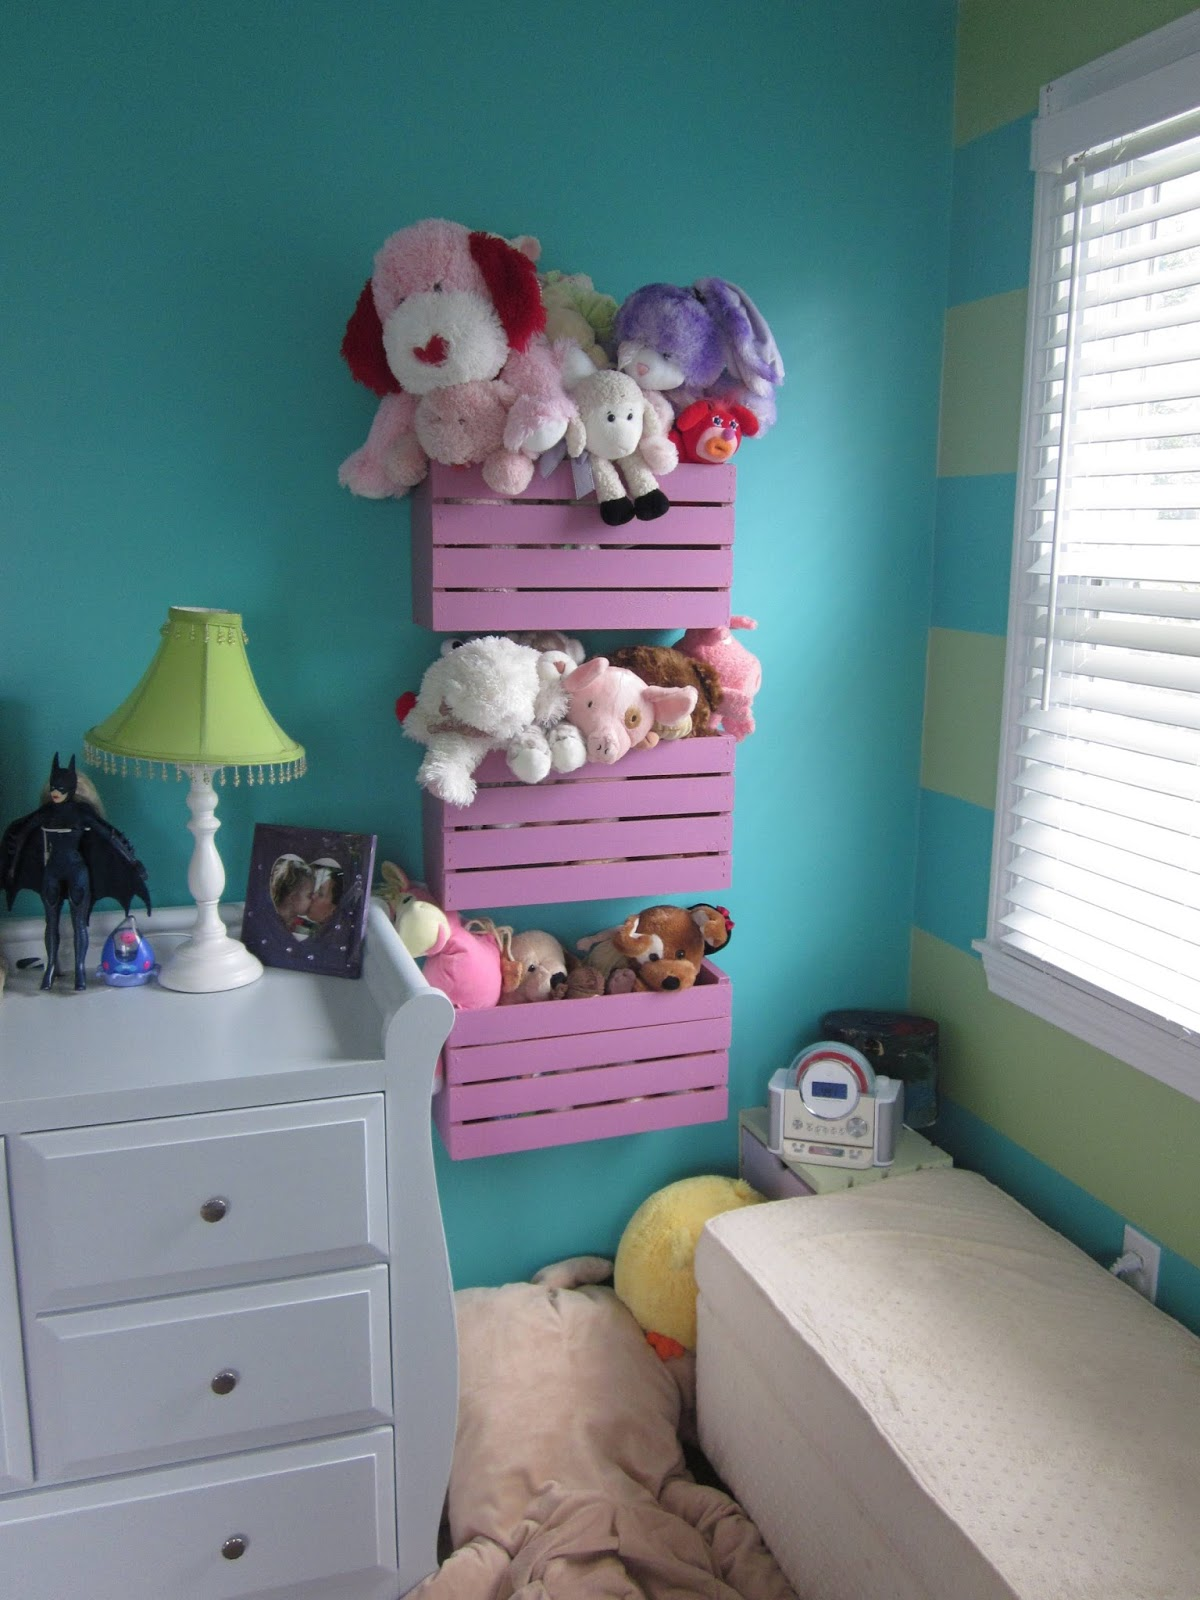 Elegant Crates Mounted On The Wall As Storage Bins For Stuffed Animals